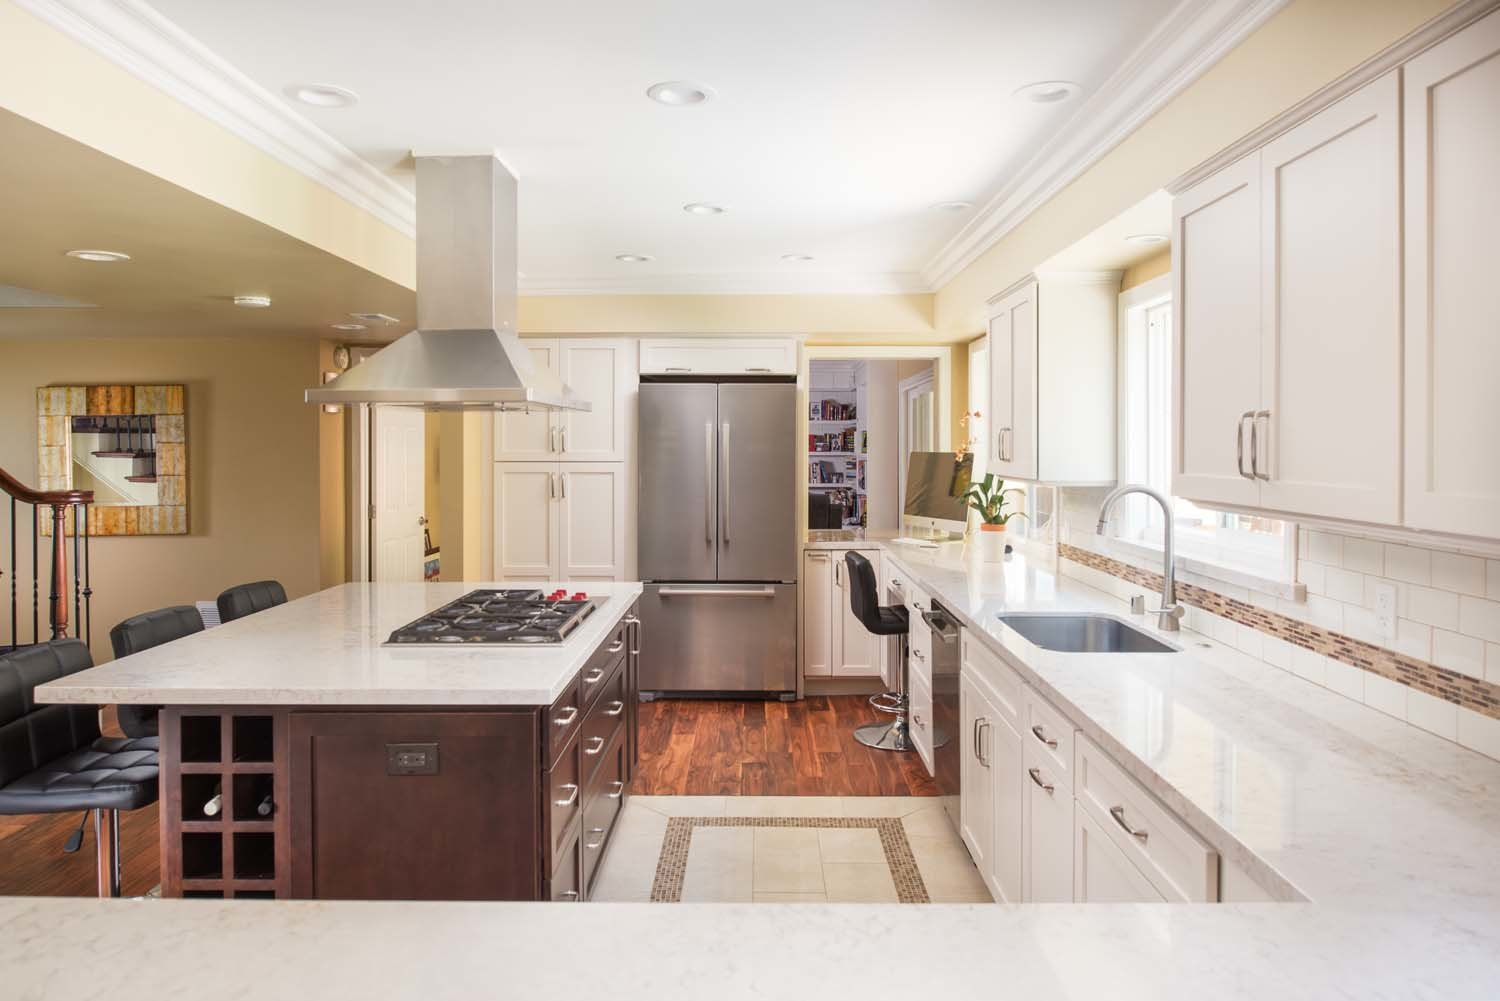 San Diego Residential General Contractor Remodel Kitchen